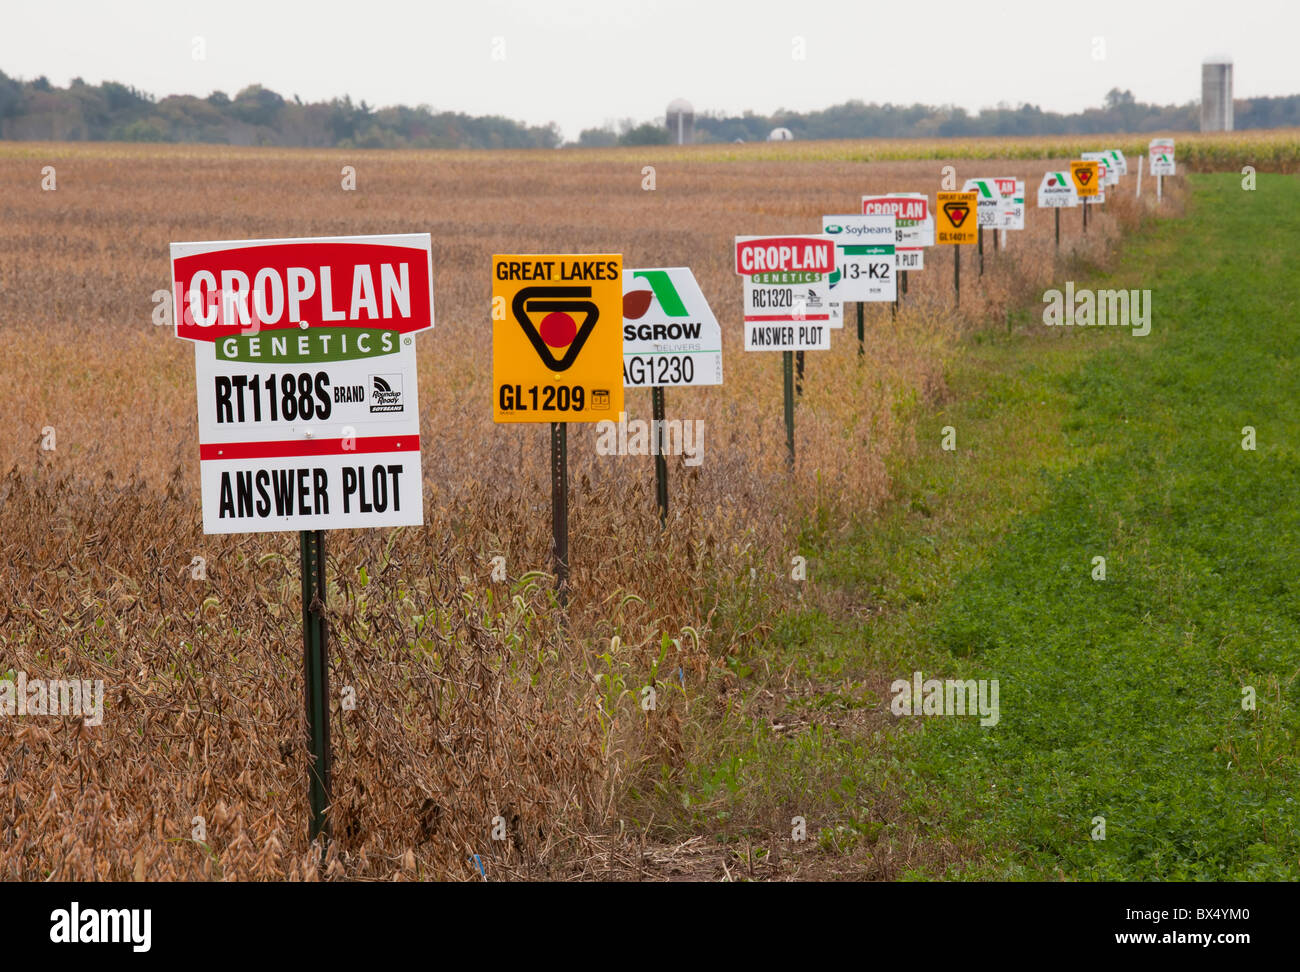 St. Nazianz, Wisconsin - Signs mark different crop varieties in a soybean field, including genetically modified - Stock Image